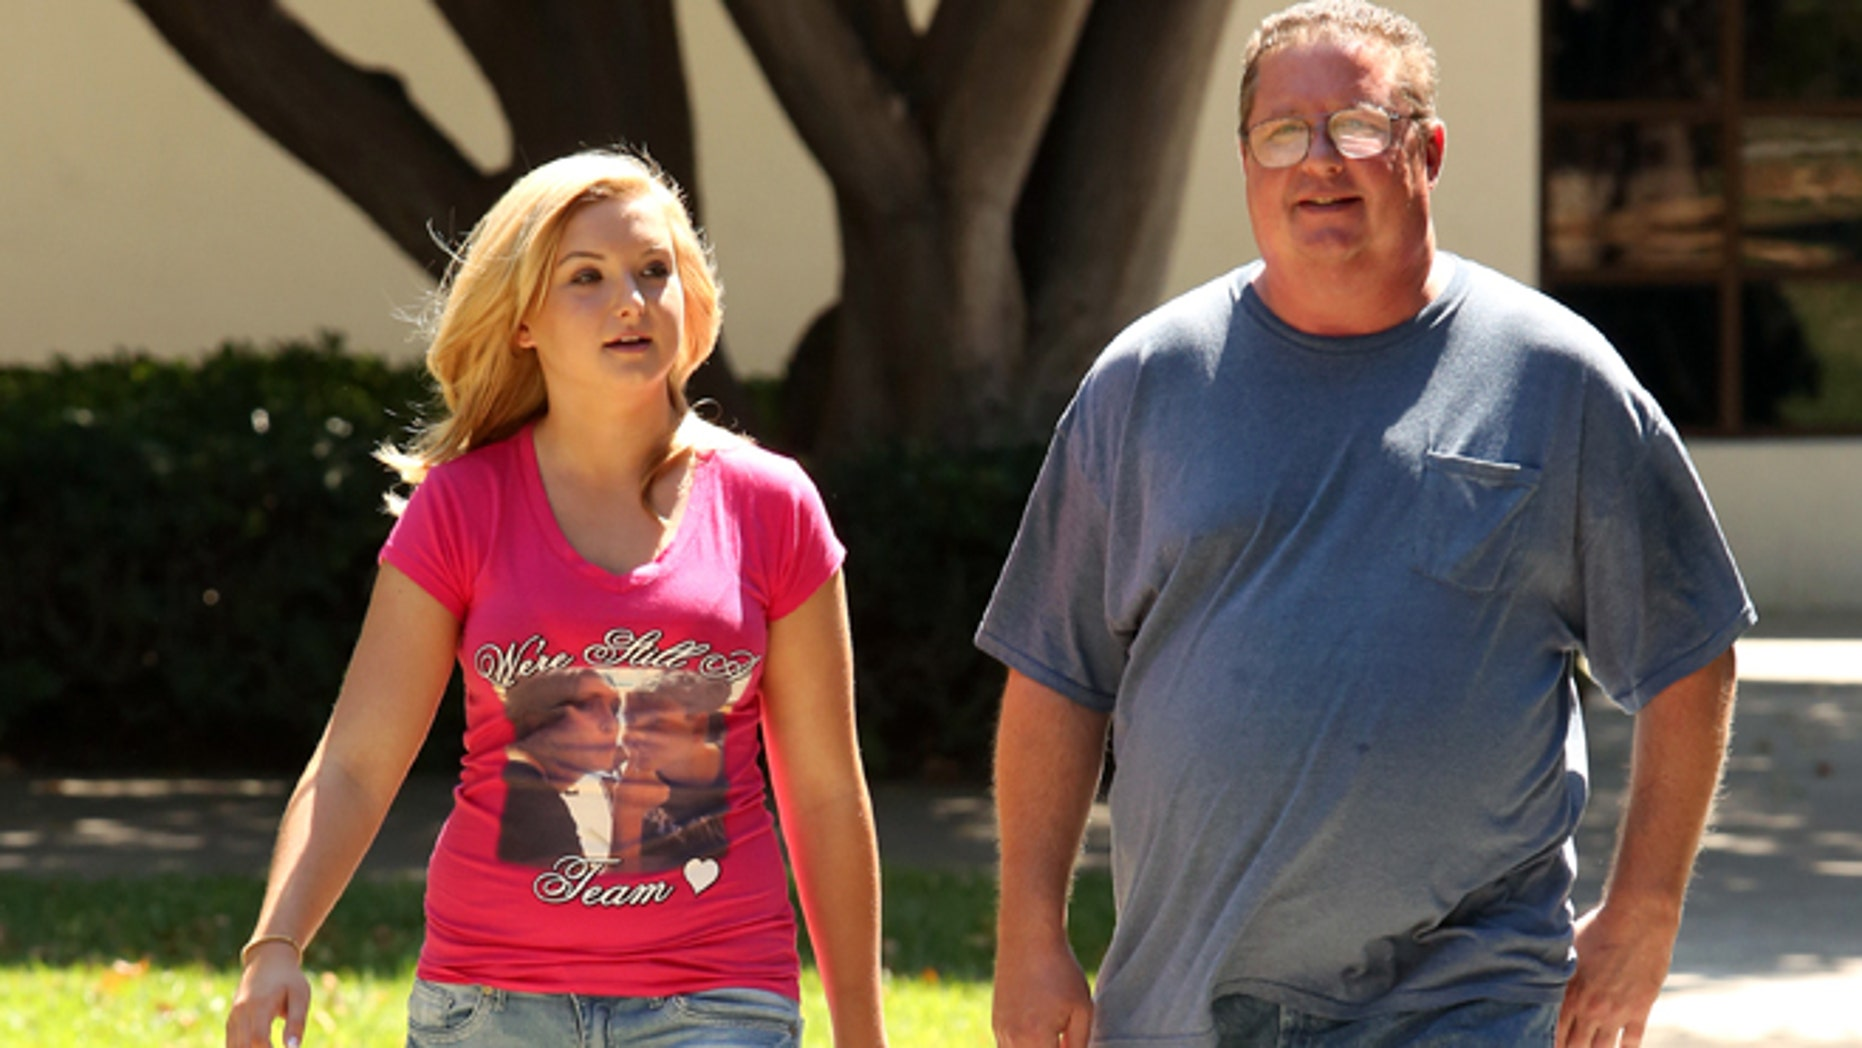 Aug. 21, 2013: This file photo released shows Hannah Anderson, left, and her father Brett Anderson in San Diego, Calif.